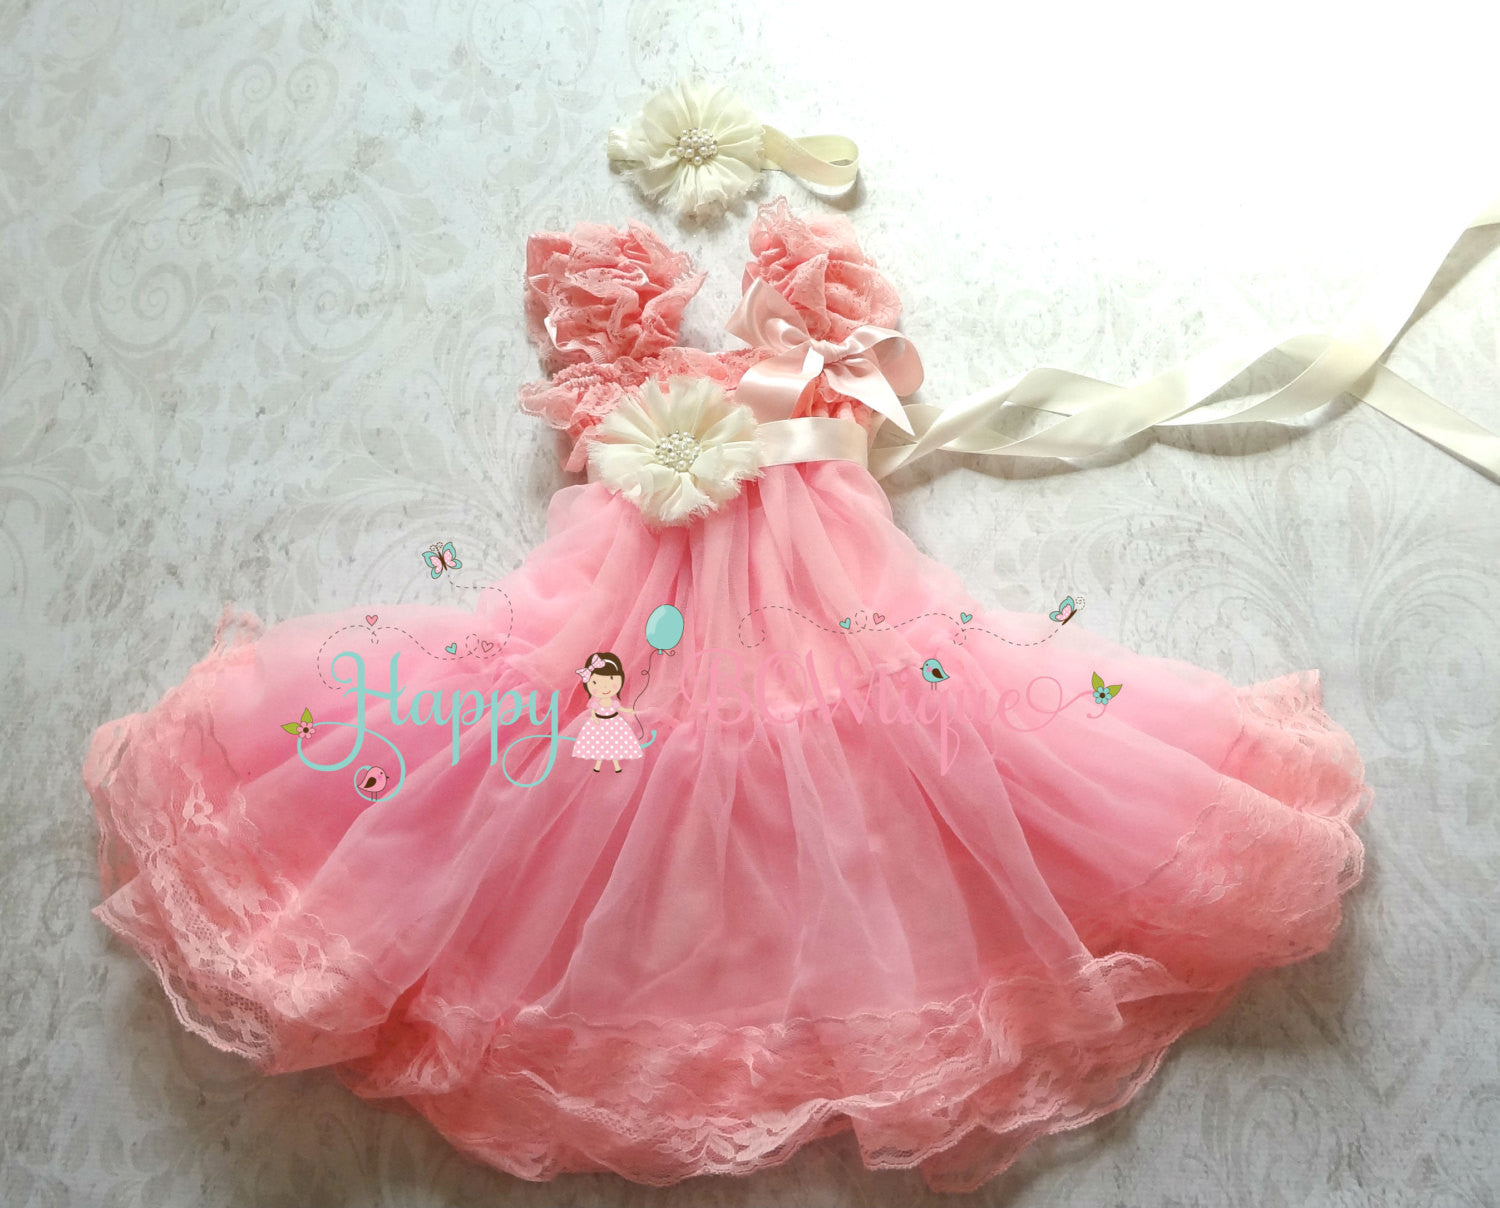 Flower Girl's Dress/ Girl's Bubblegum Pink Chiffon Lace Dress set - Happy BOWtique - children's clothing, Baby Girl clothing